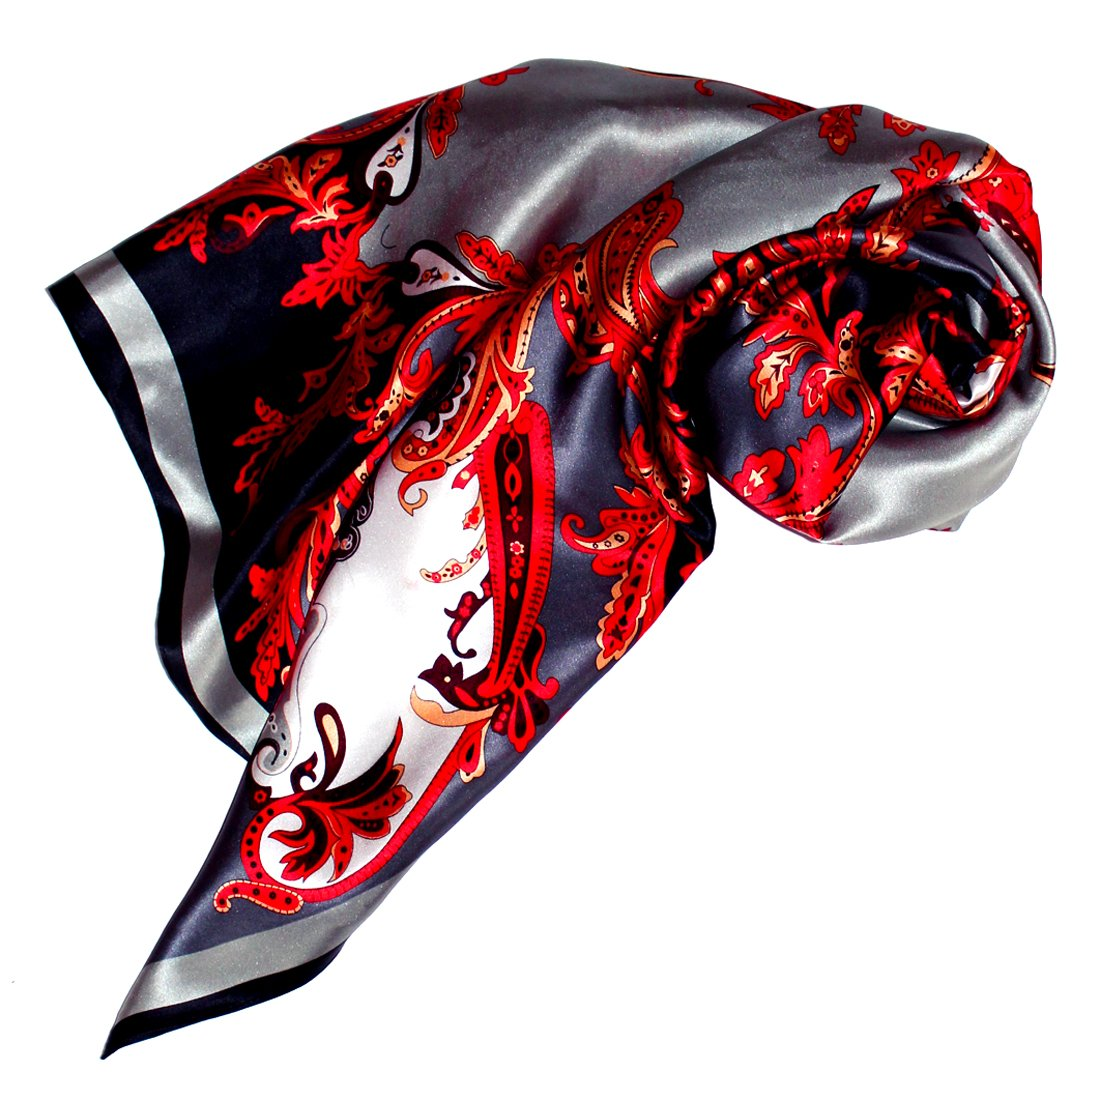 LORENZO CANA - Italian Scarf 100% Silk 35'' x 35'' Grey Red White Black Paisley - 89027